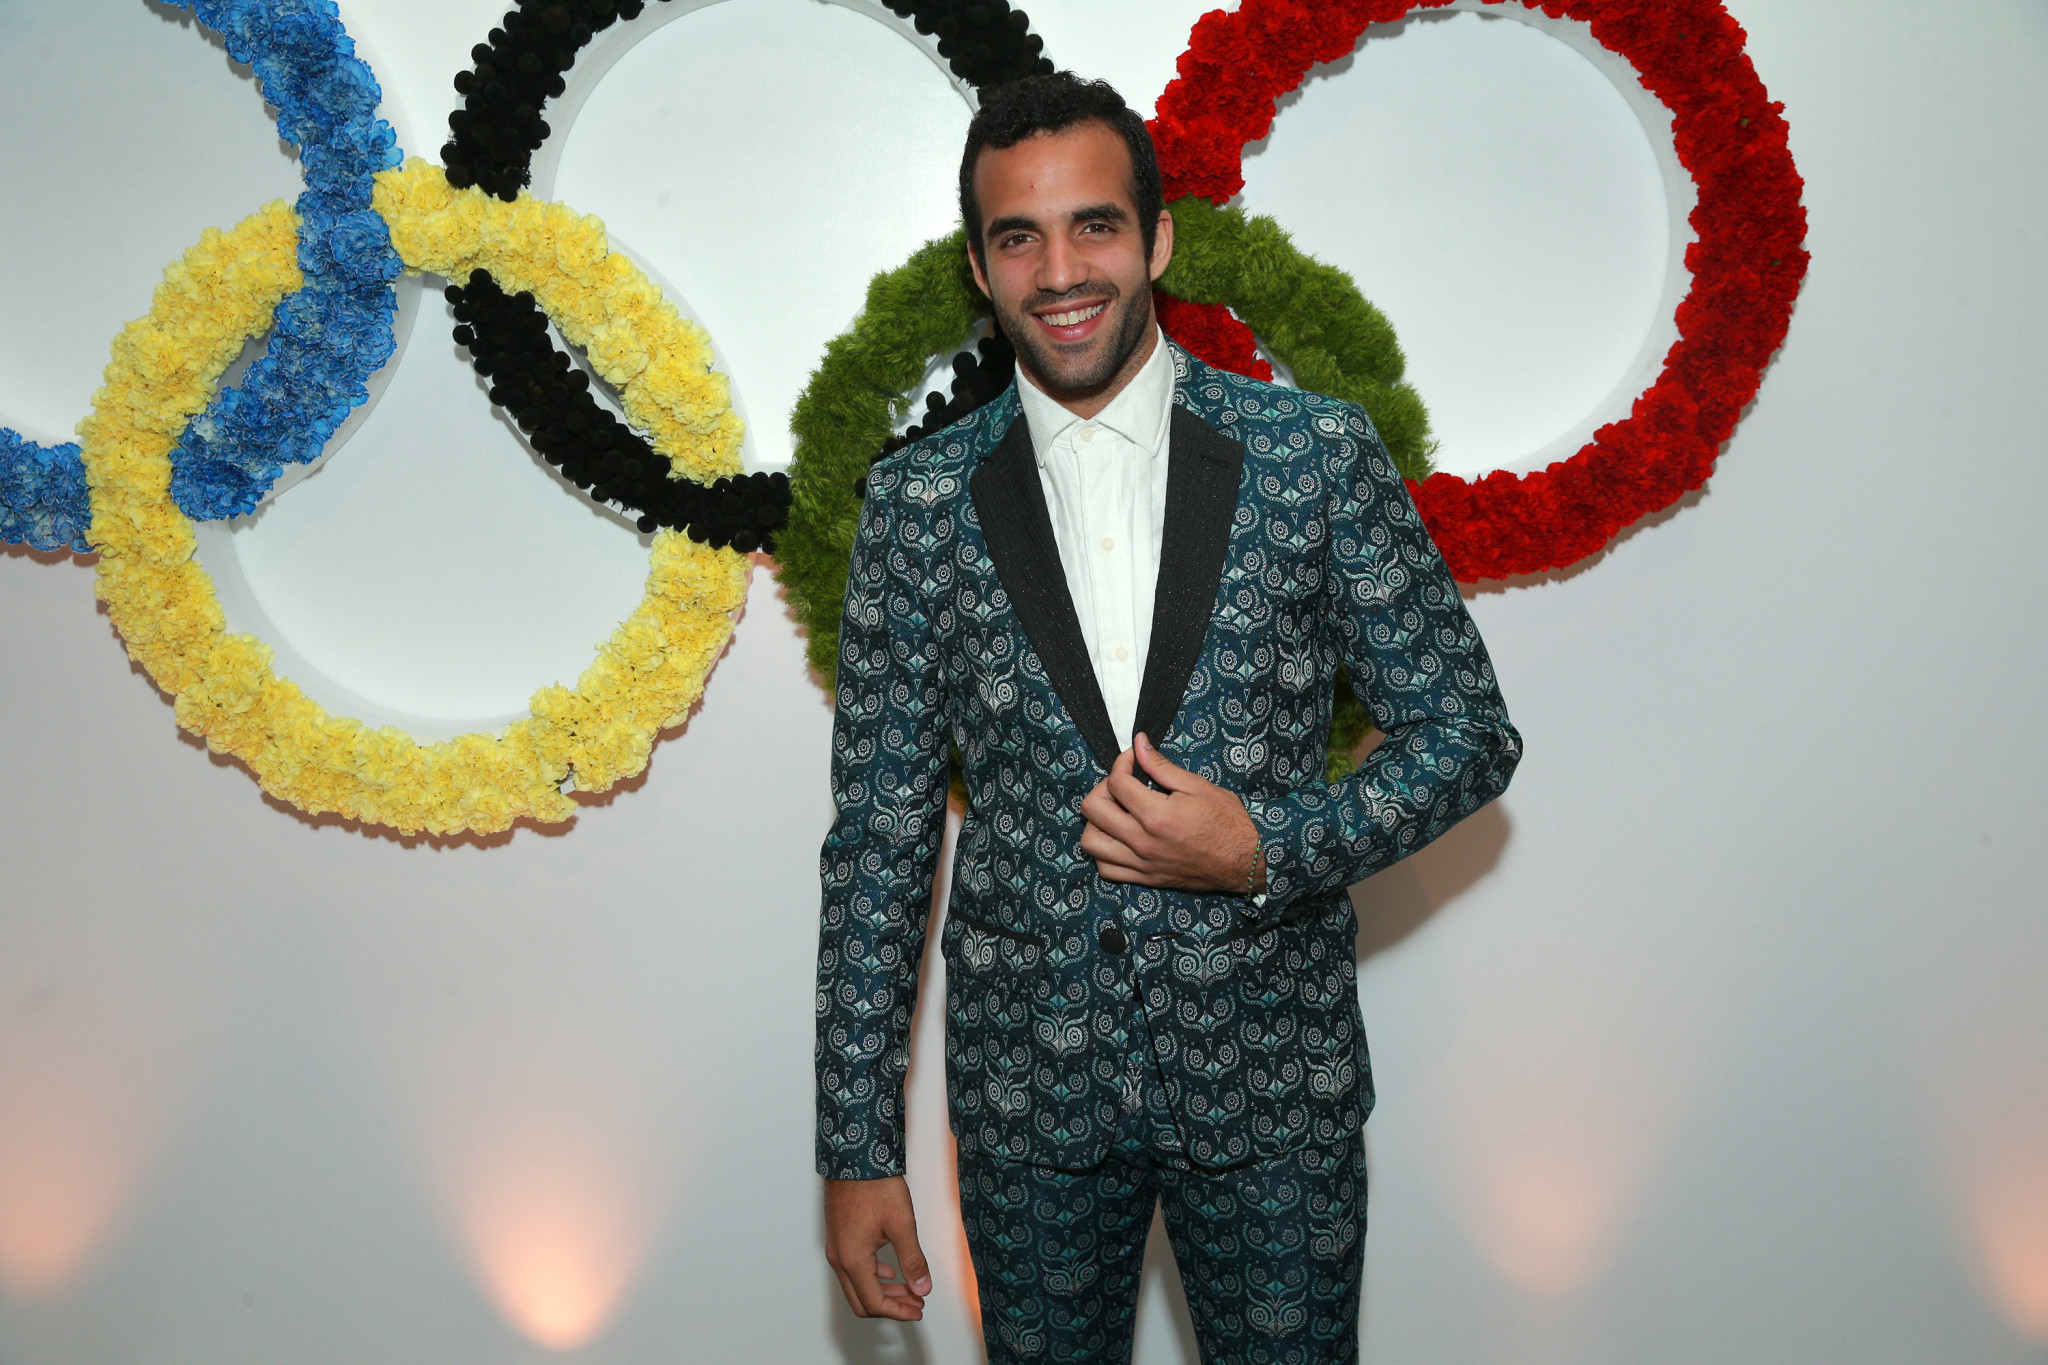 Danell Leyva is one of the role models named ©Getty Images